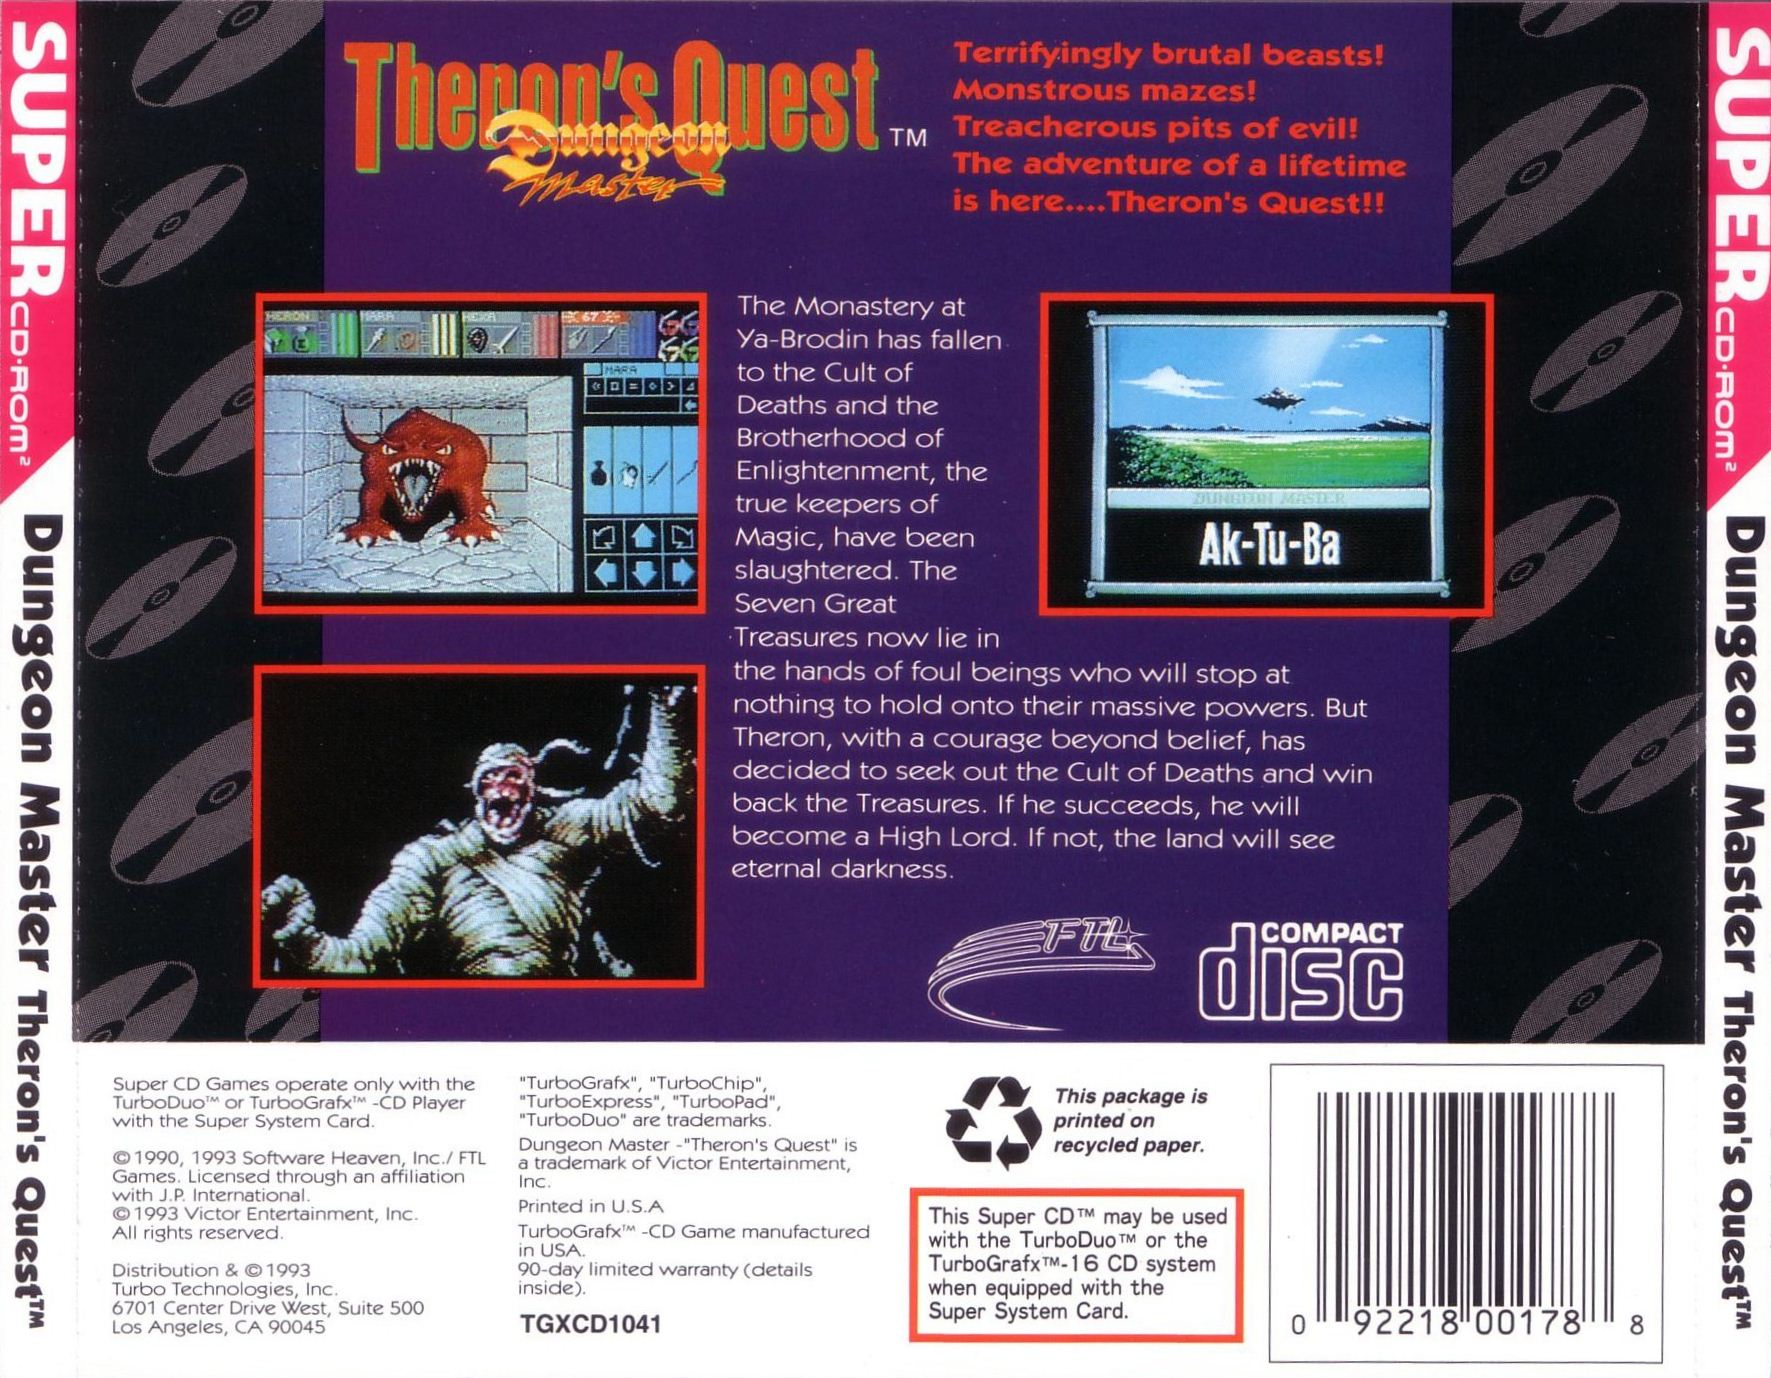 Game - Theron's Quest - US - Turbografx - Back Card - Front - Scan